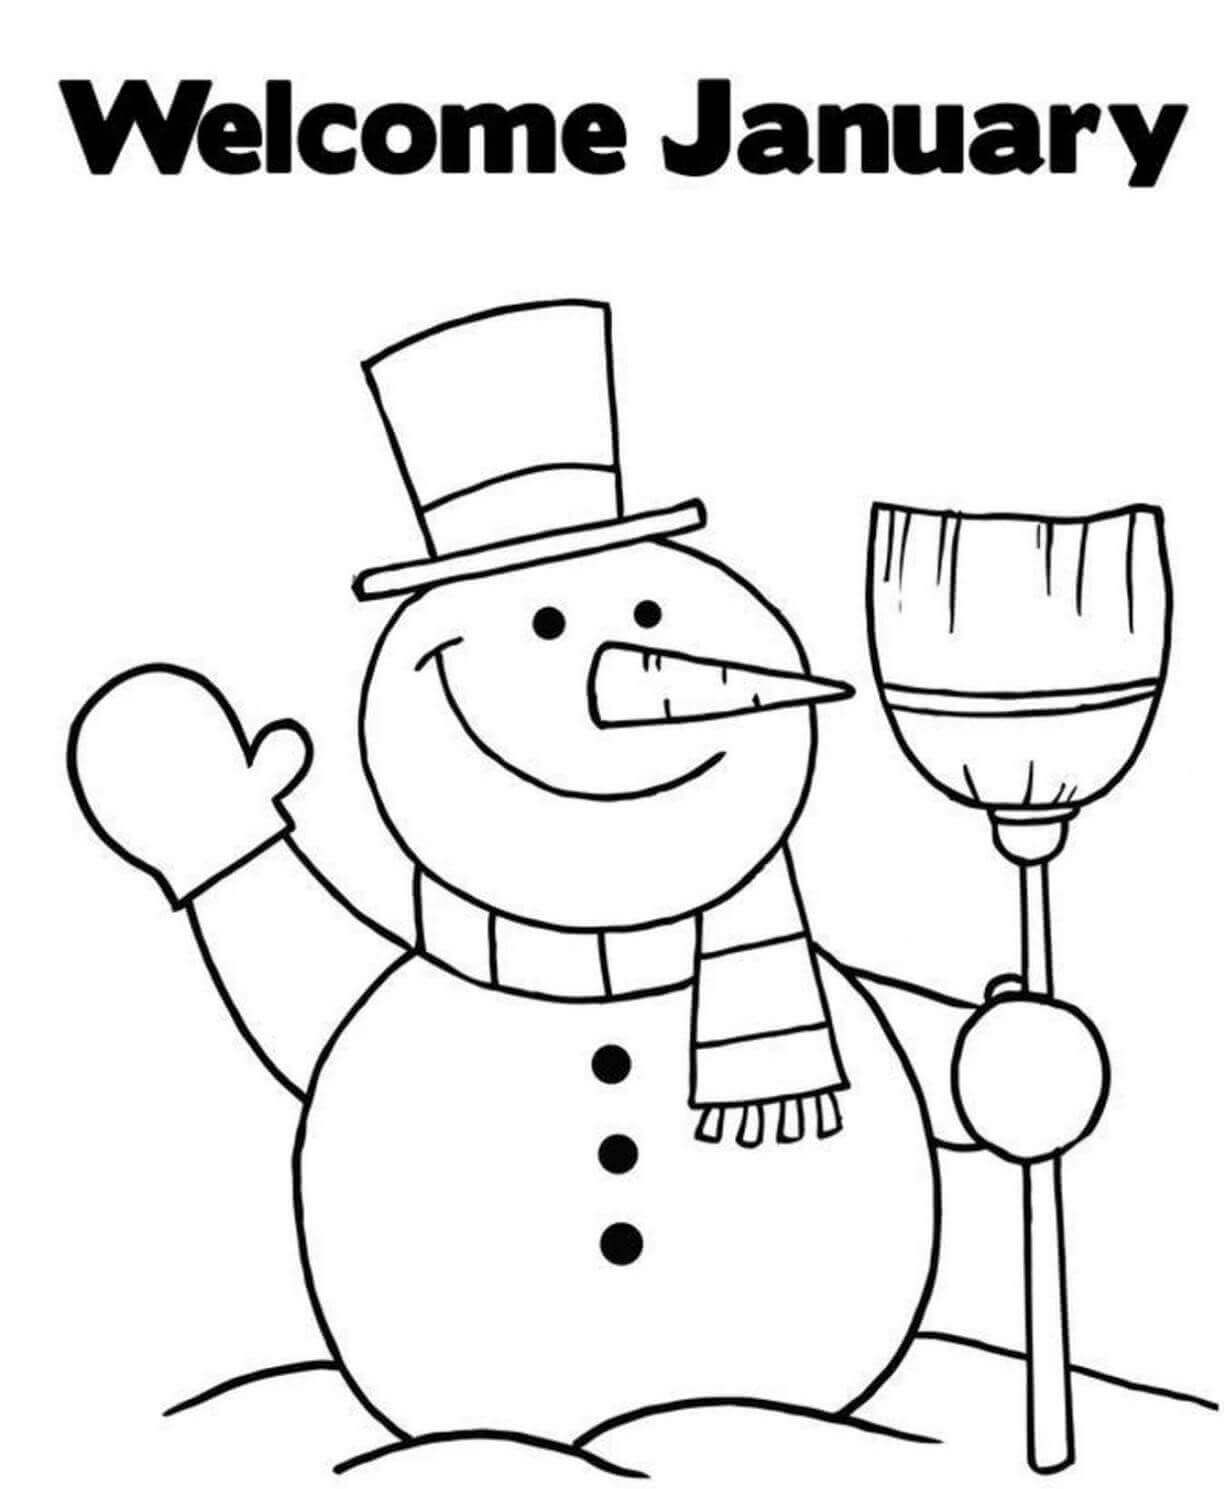 Welcome January Coloring Page